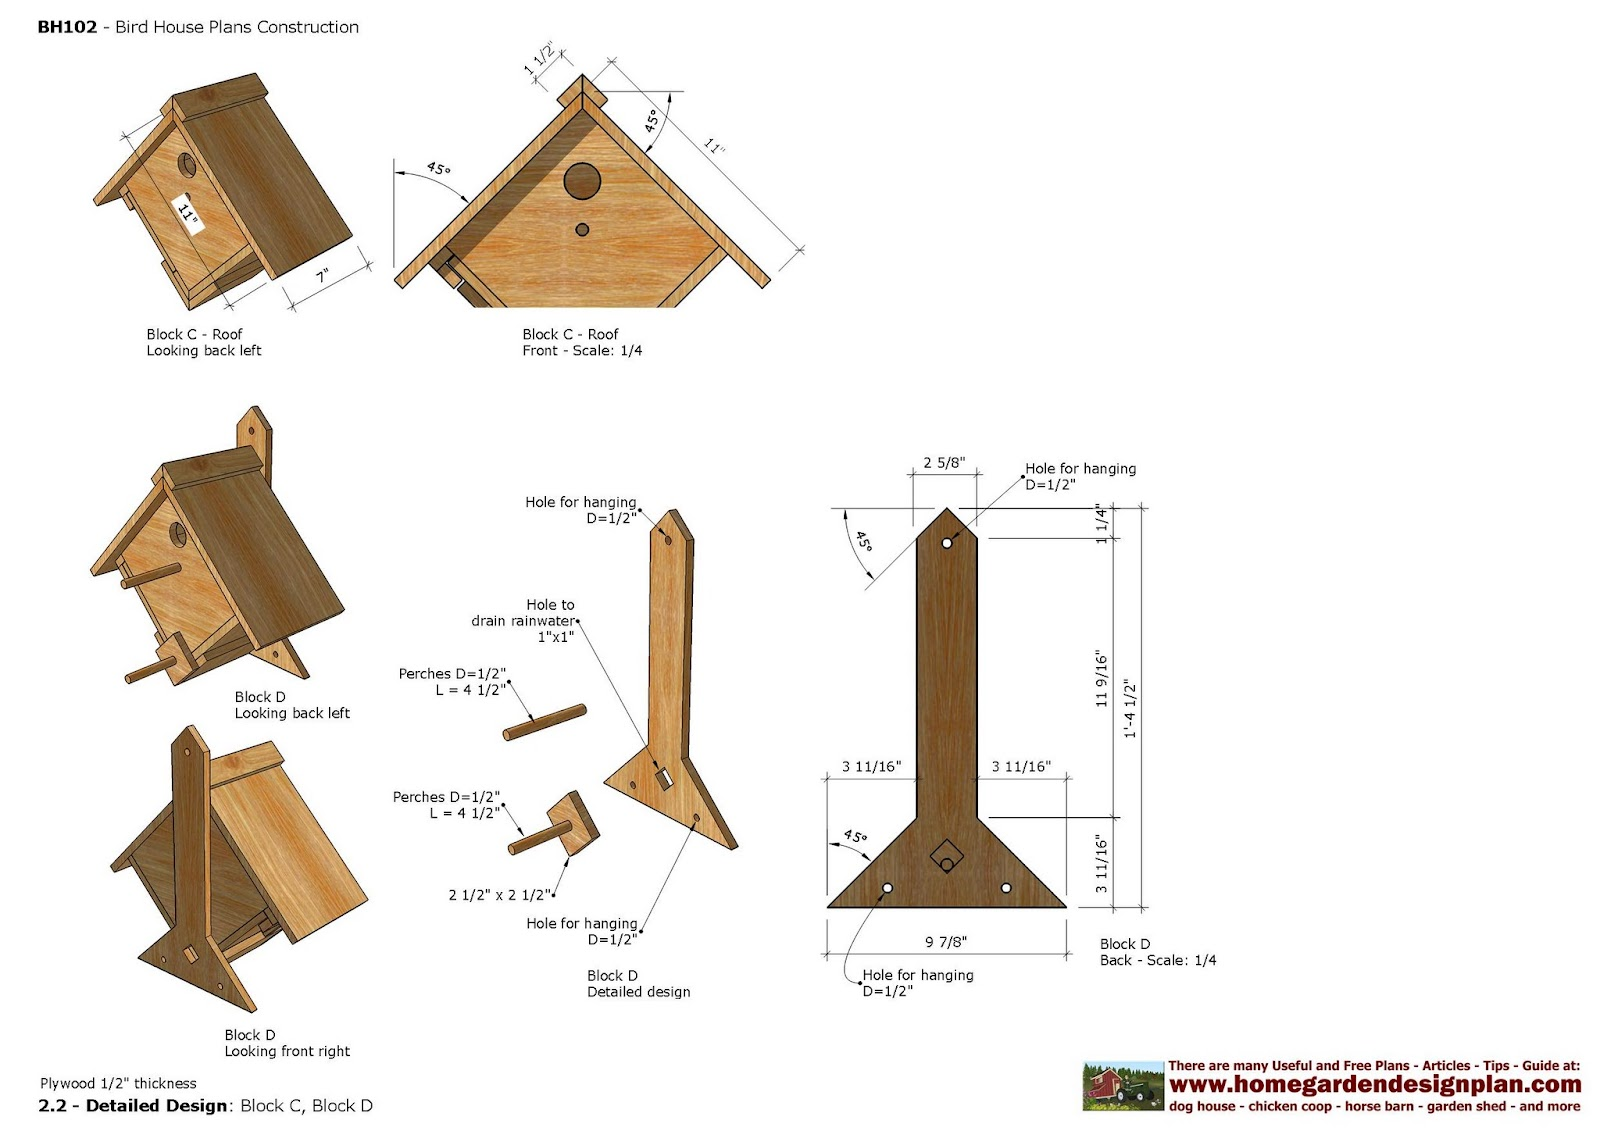 Home garden plans bh bird house plans construction for House construction plan